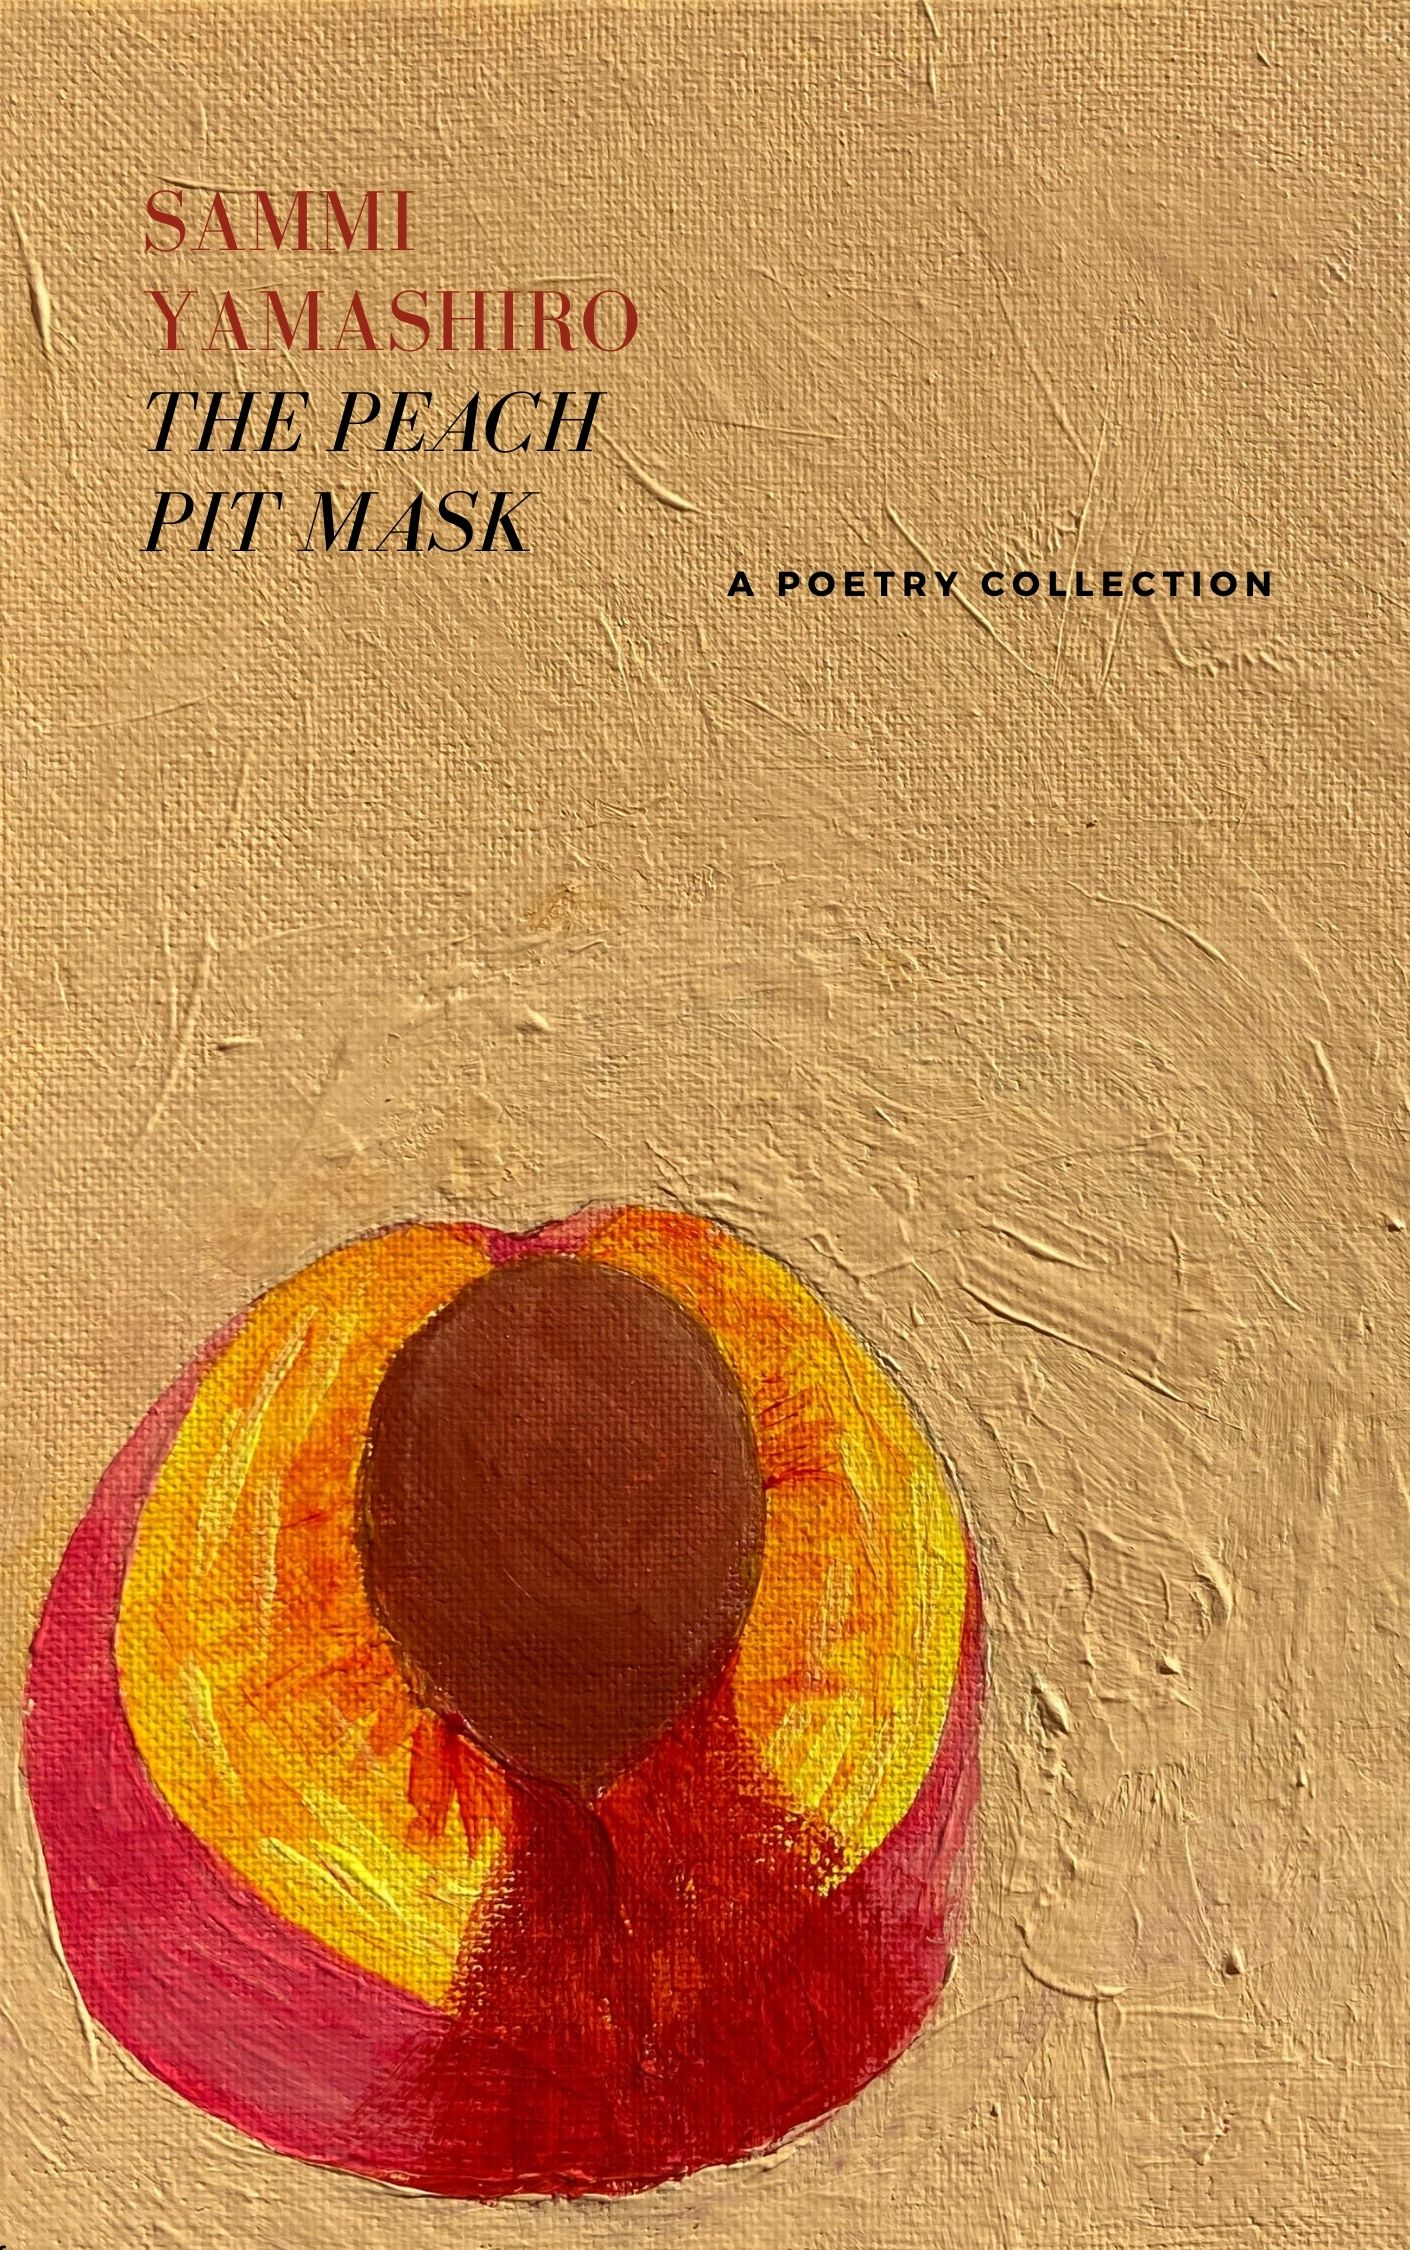 """""""The Peach Pit Mask"""" by Sammi Yamashiro; Under the Confines of Abuse, a Survivor Paves Her Own Path Forward"""